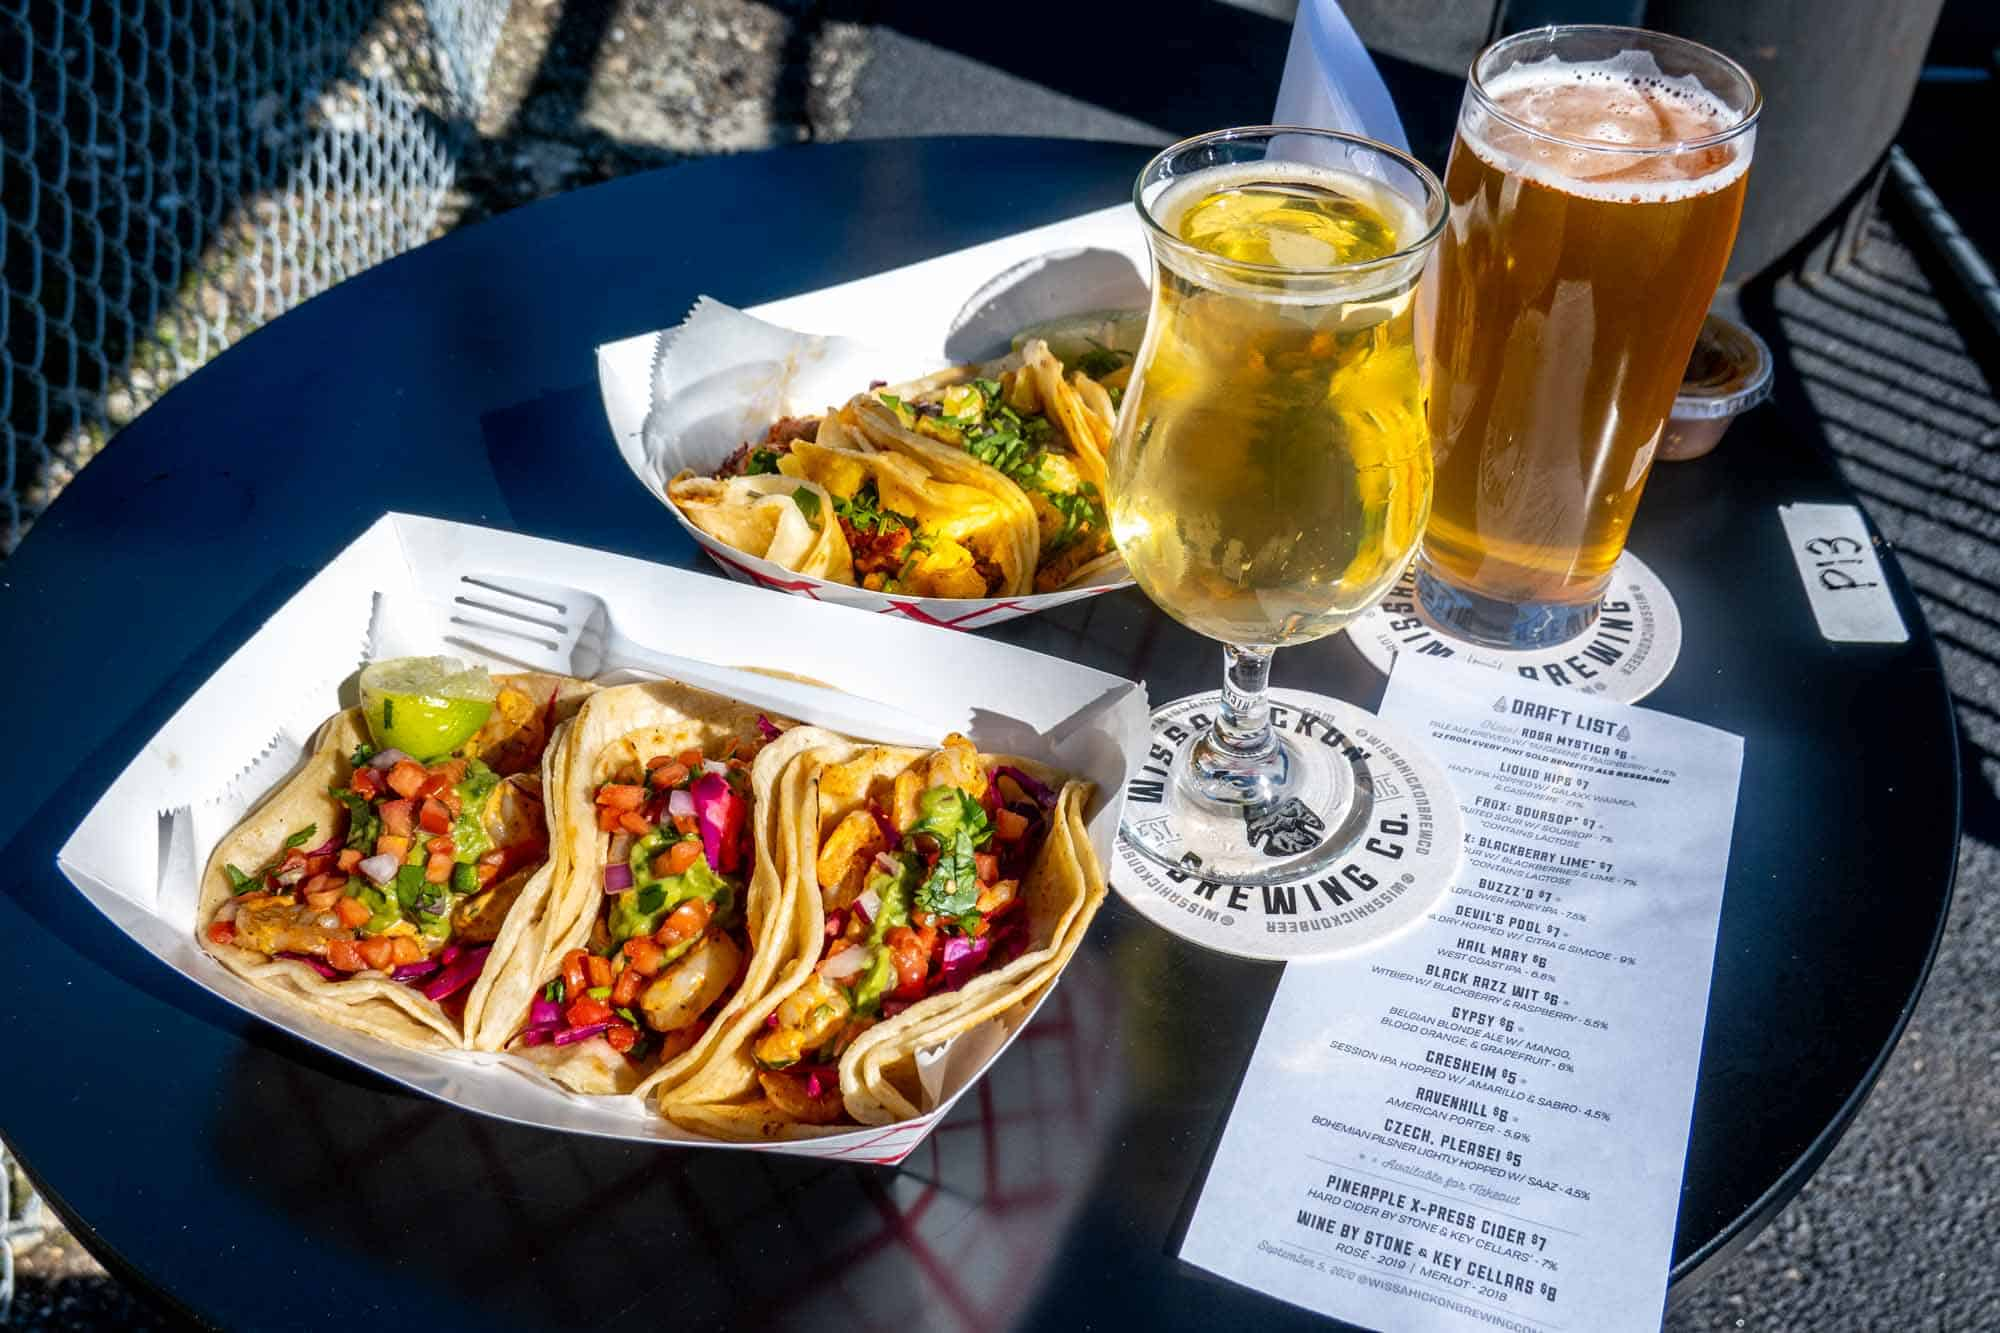 Trays of tacos on a table with two beers